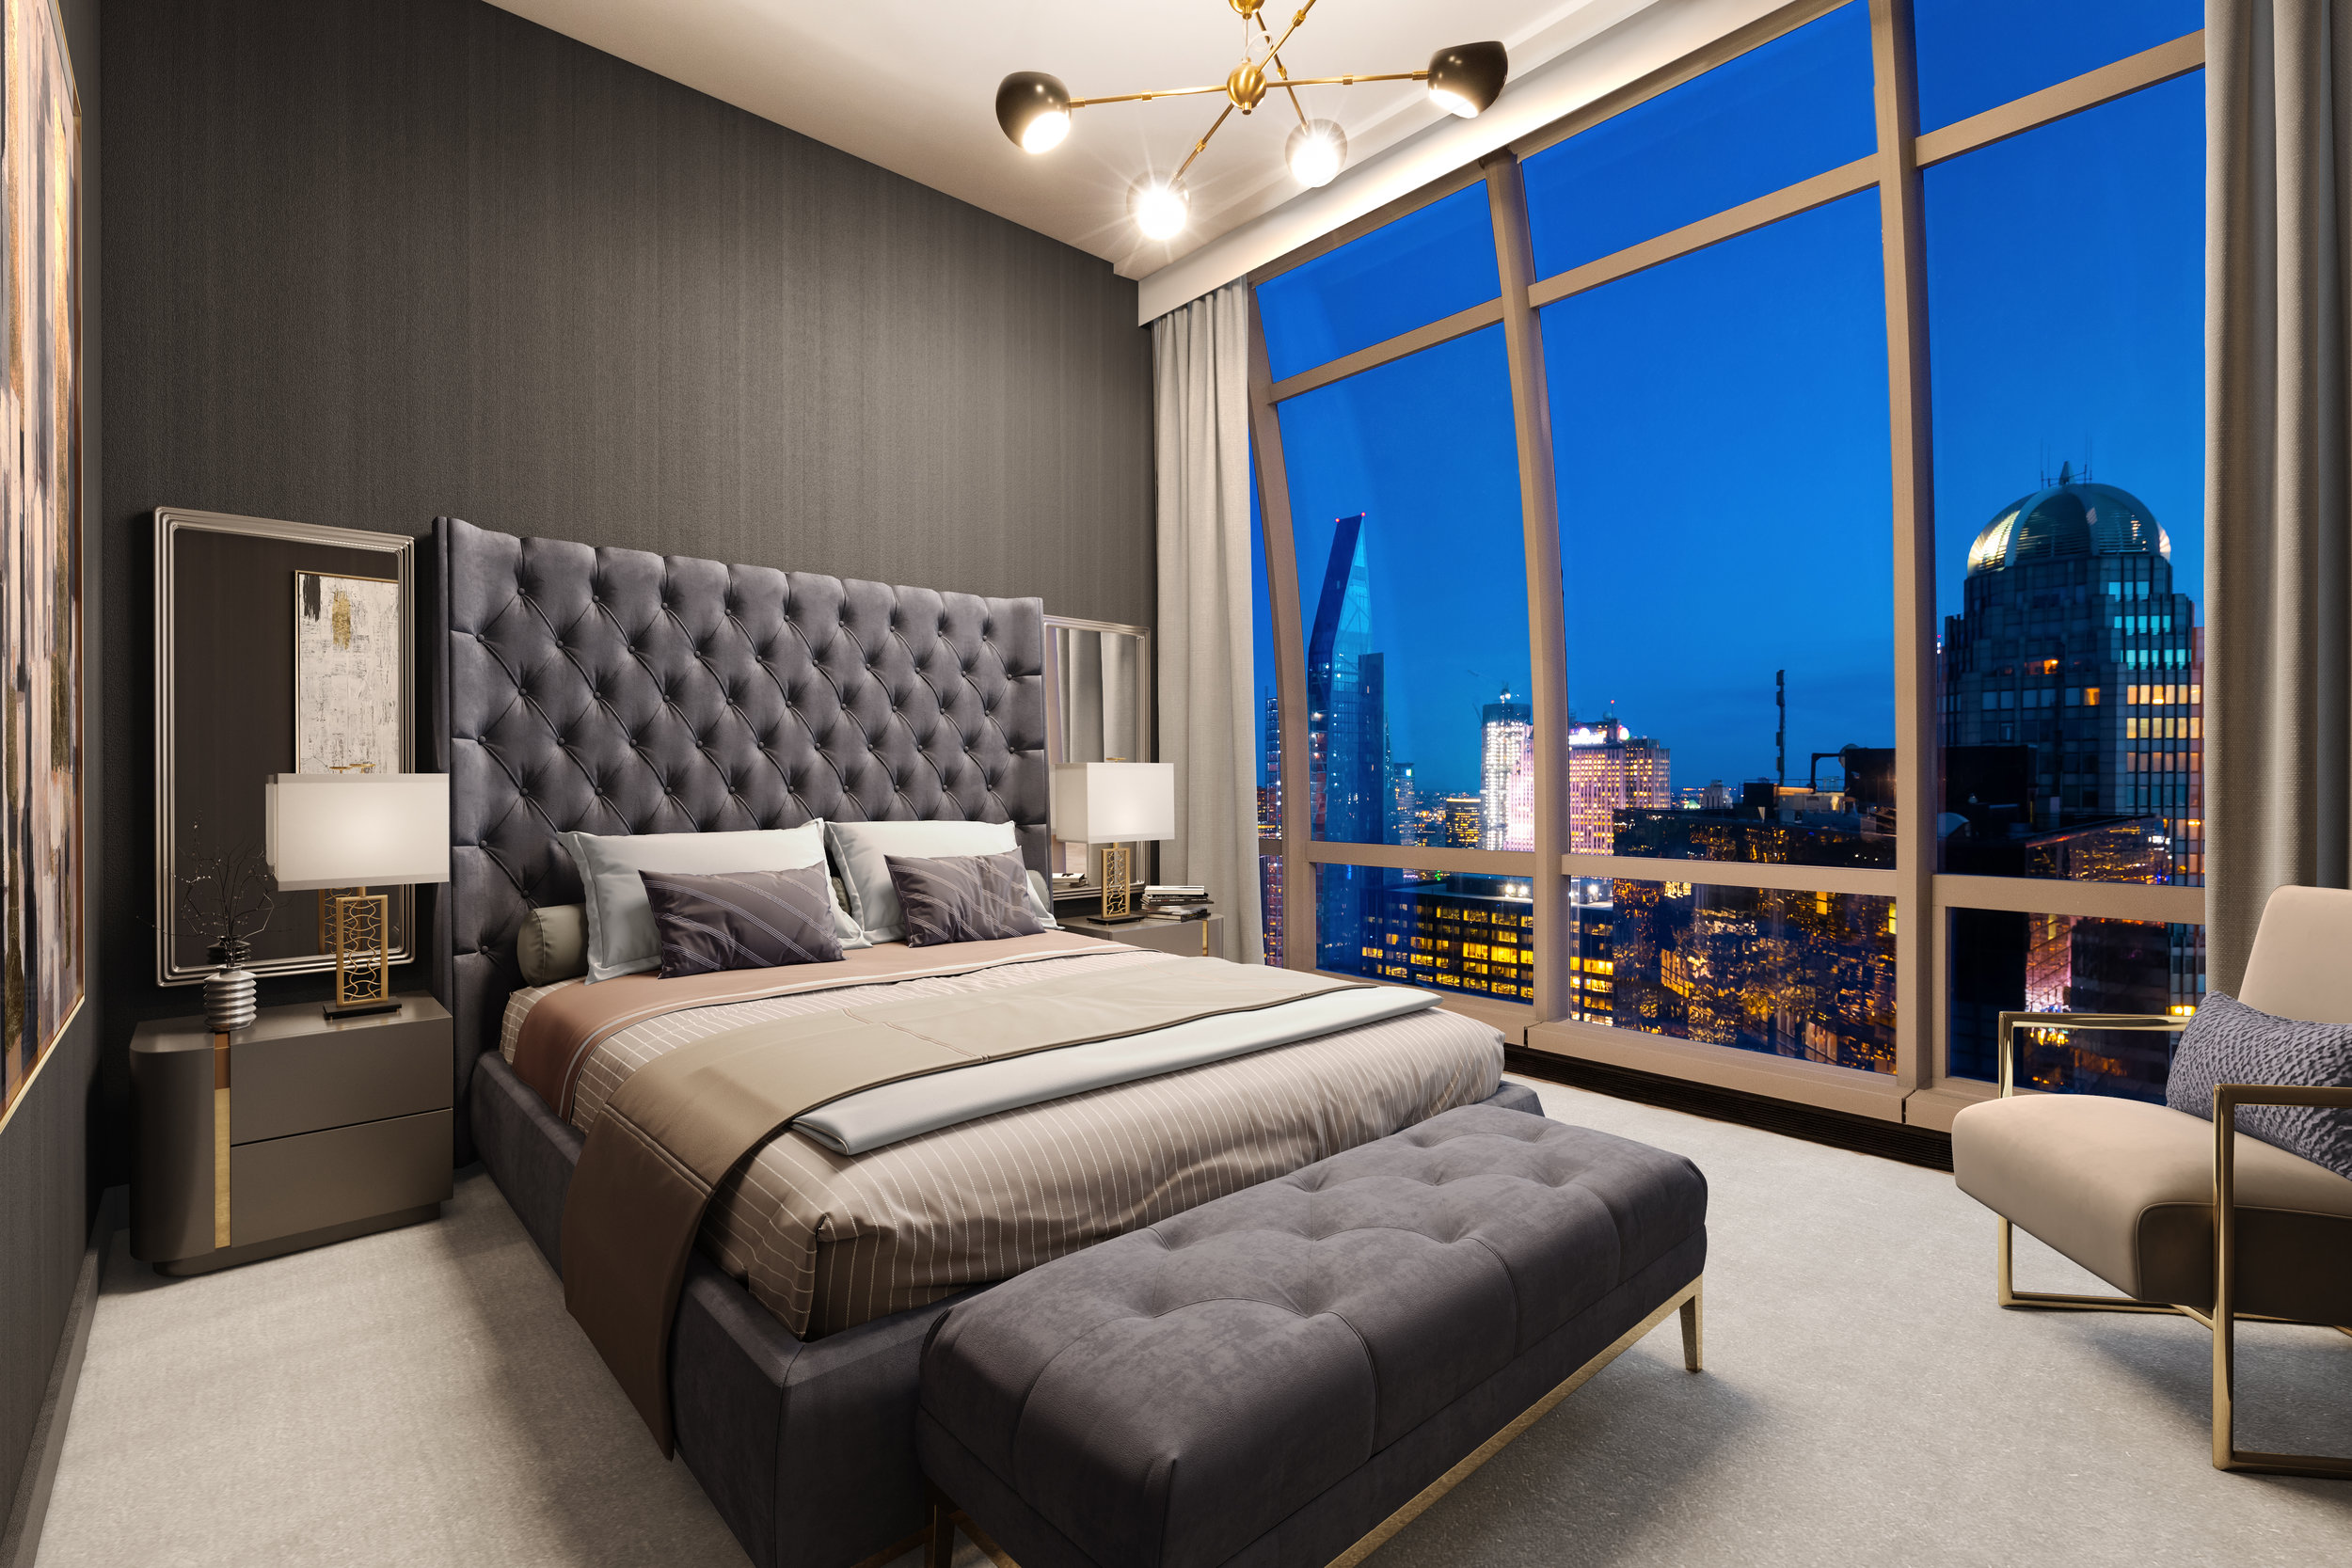 One57157West57thSt67B-CentralParkSouthNewYork_Anthony_Barillo_DouglasElliman_Photography_77424821_high_res.jpg